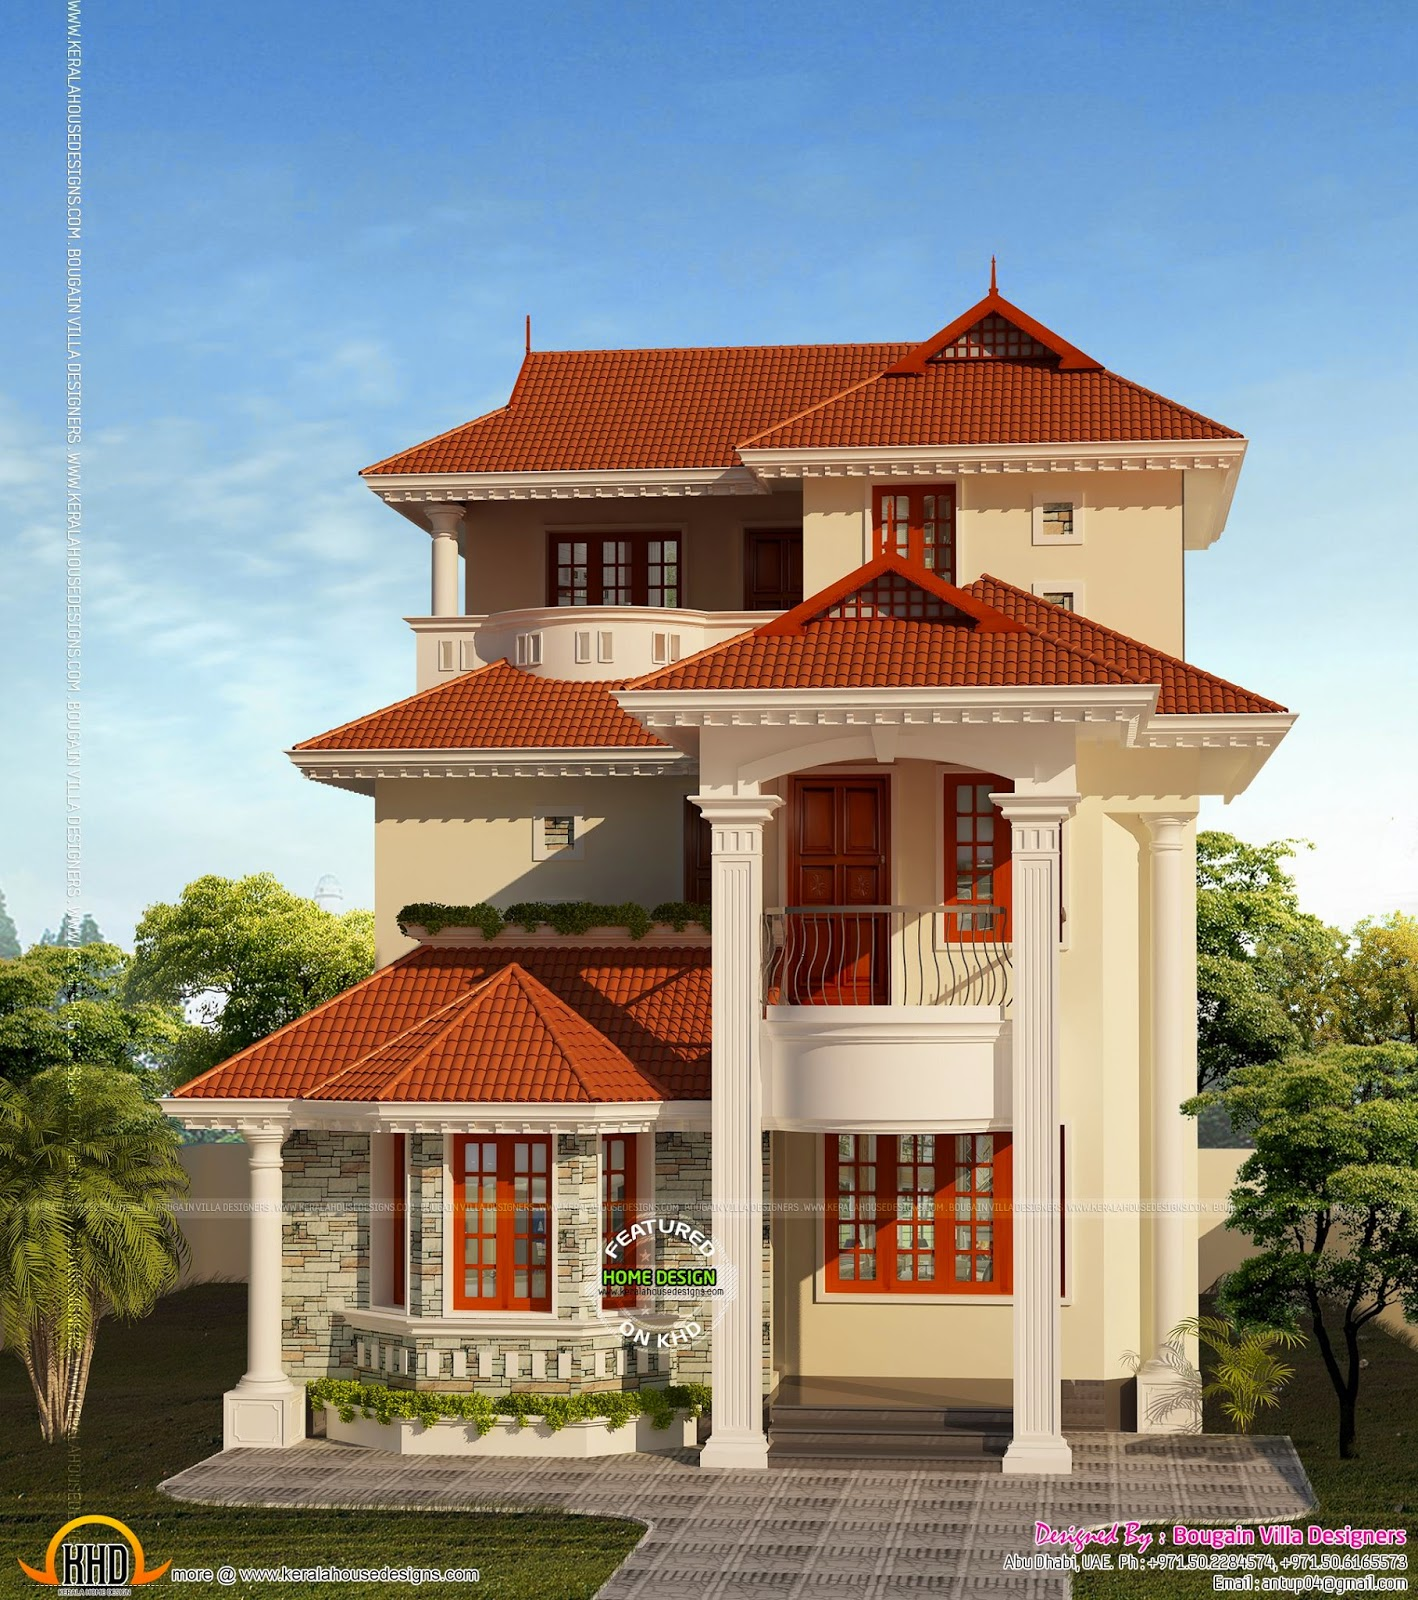 Small plot house plan kerala home design and floor plans for Small house design kerala style